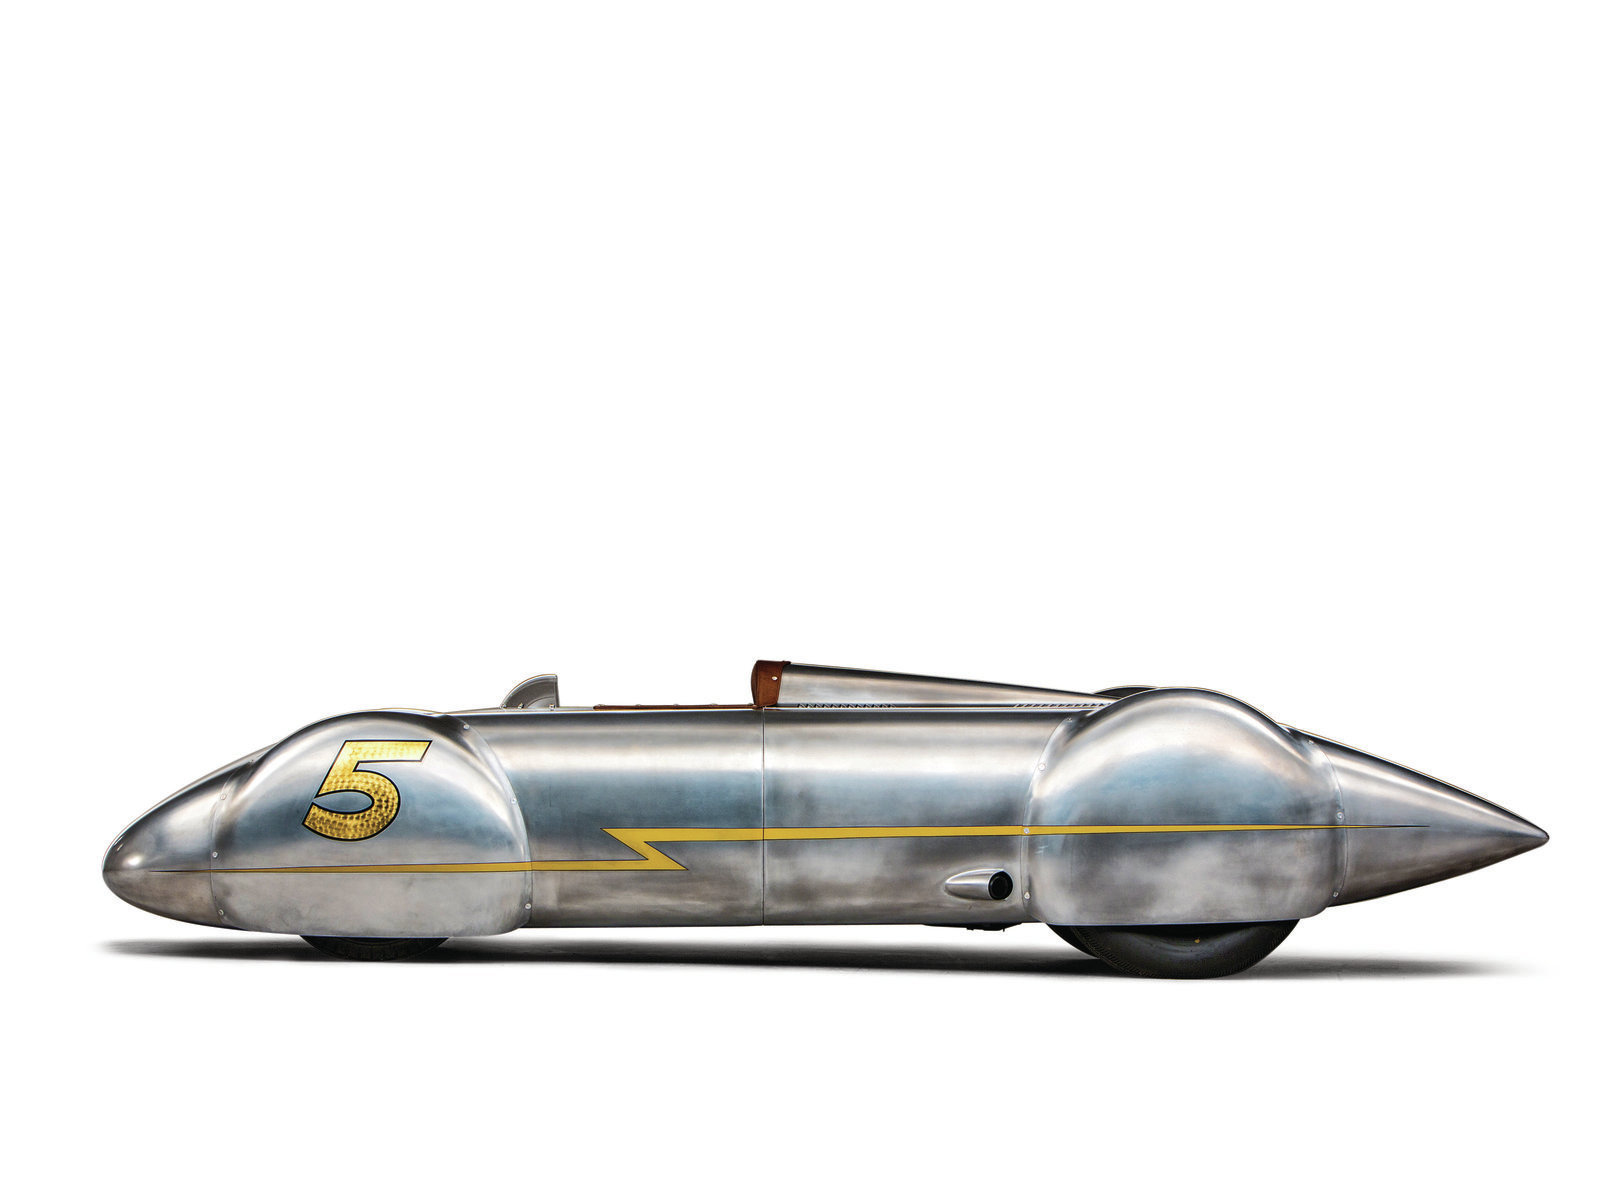 With no rollbars or bumpers, the So-Cal streamliner takes on the most slippery shape imaginable. The crowned surfaces were originally created at Valley Custom in Burbank and were confined to nose, tail, and wheel blisters. All the other panels were rolled or flat and were handled by the So-Cal crew to costs.